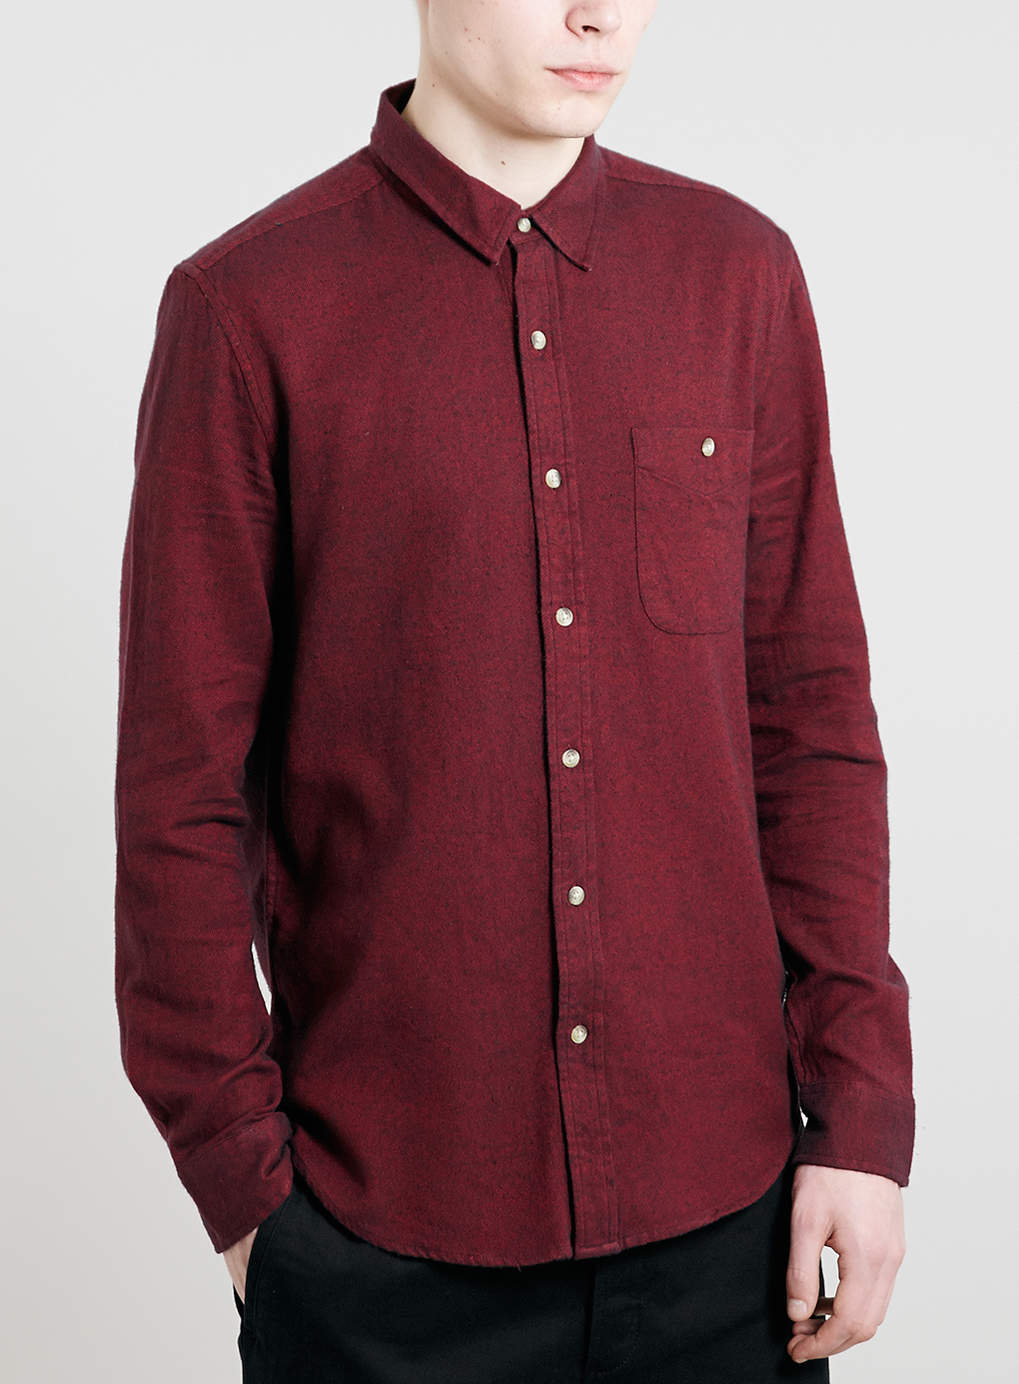 Topman Red Brushed Twill Long Sleeve Shirt In Red For Men